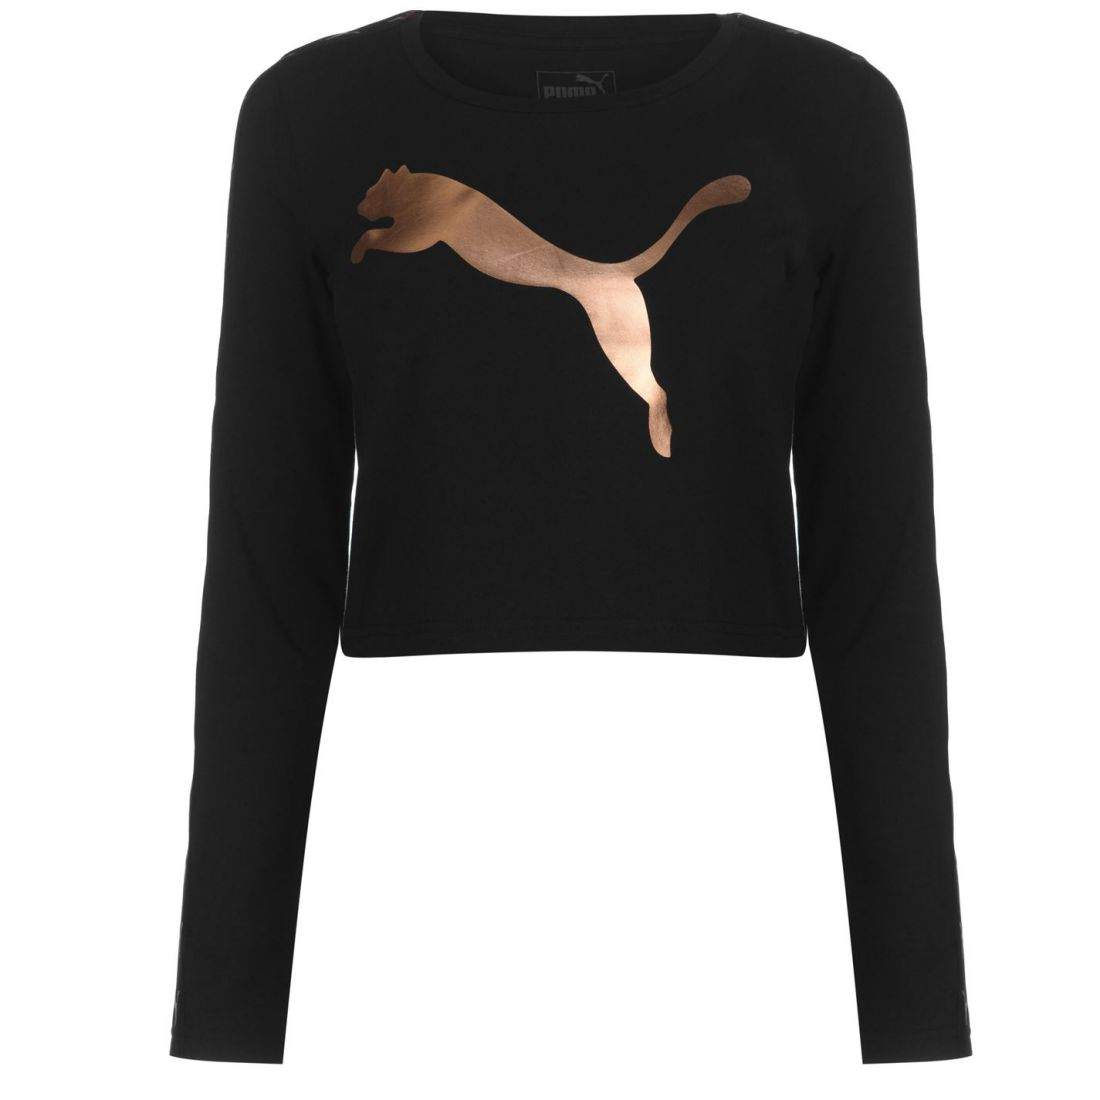 4c0bf50dd6c809 Details about Puma Full Length Sleeve Crop T Shirt Ladies Cropped Tee Top  Crew Neck